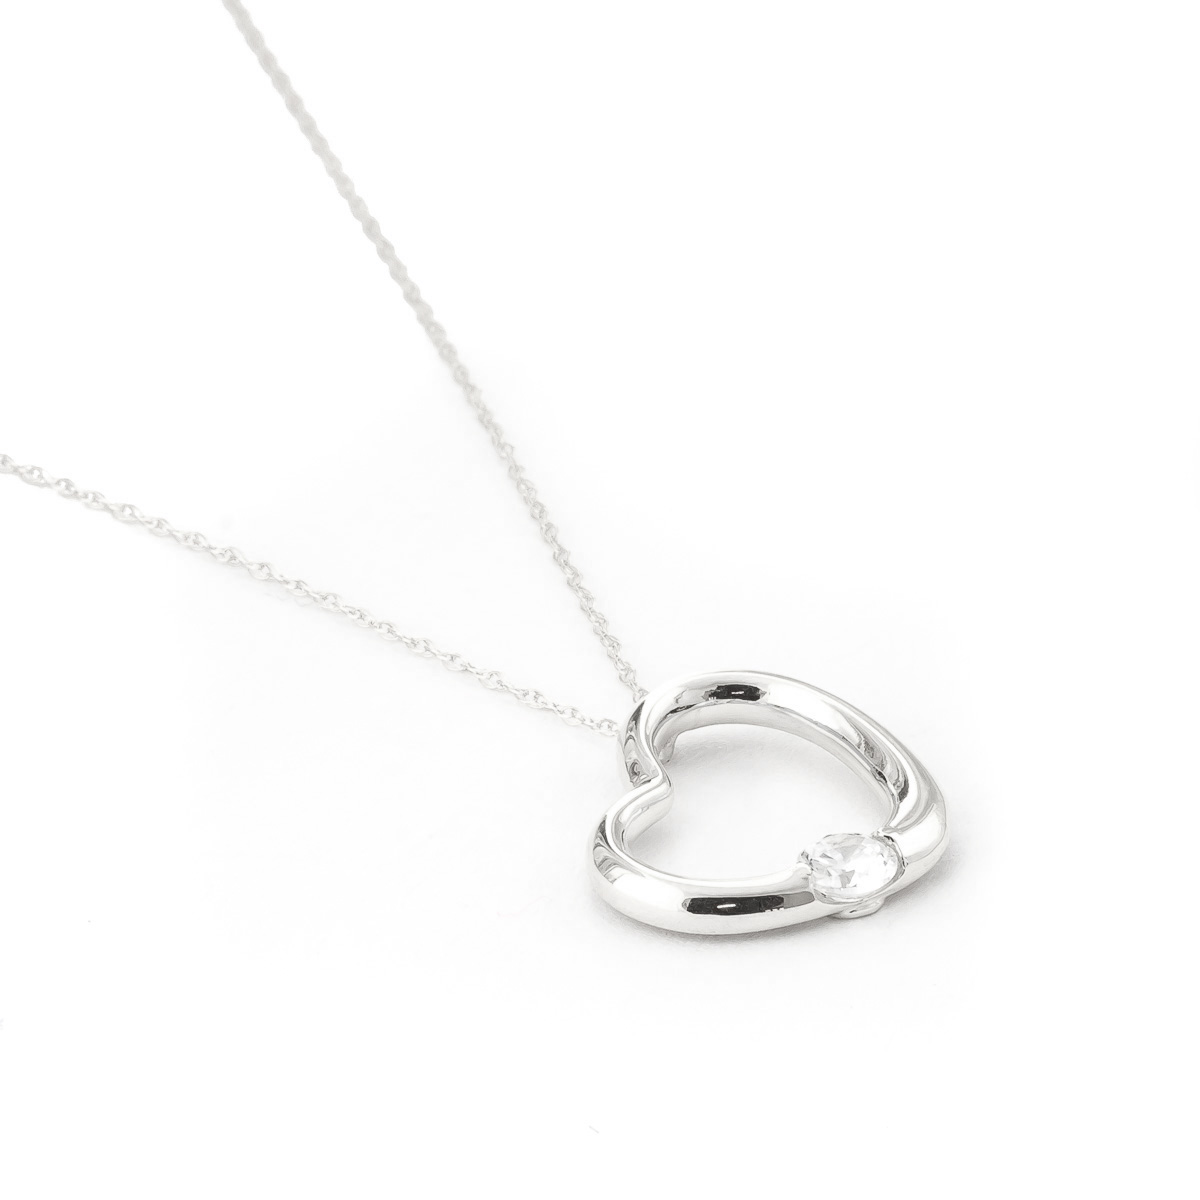 Round Cut Diamond Pendant Necklace 0.25 ct in 9ct White Gold